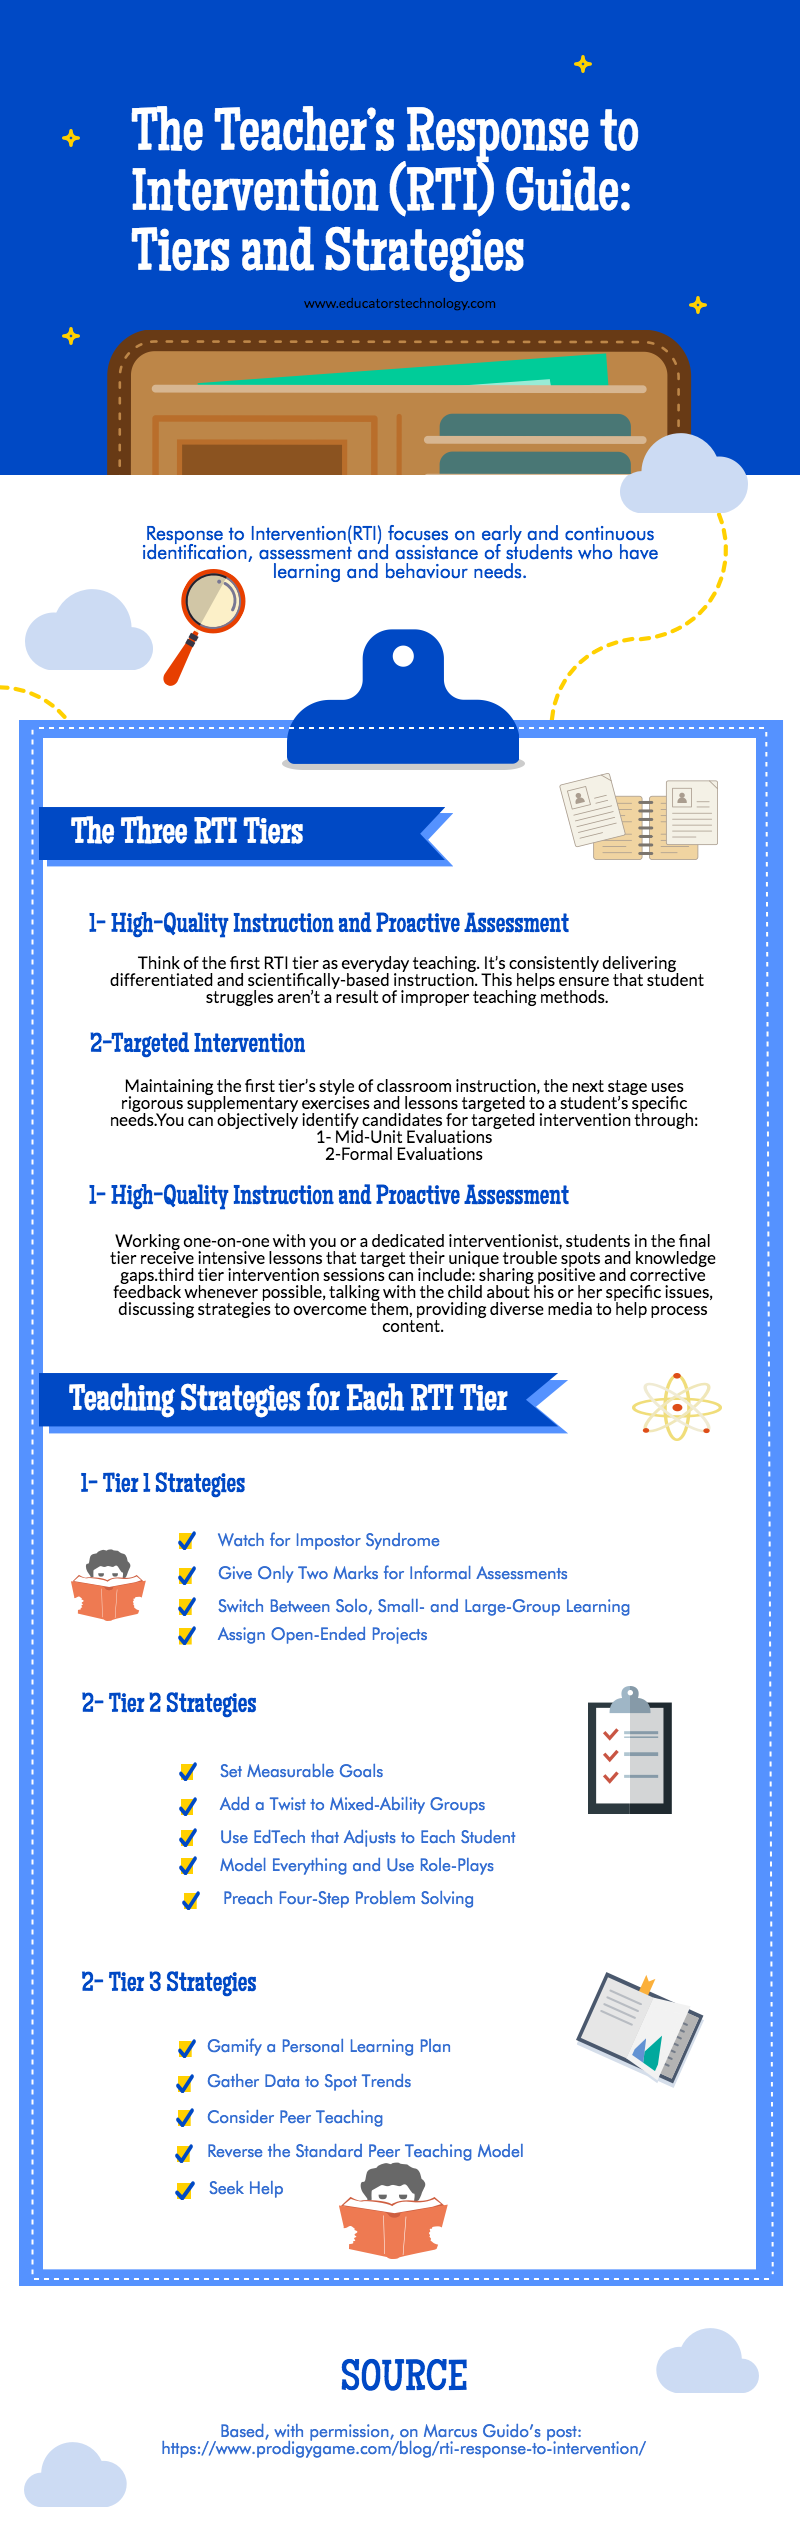 The Teacher's Response to Intervention (RTI) Guide